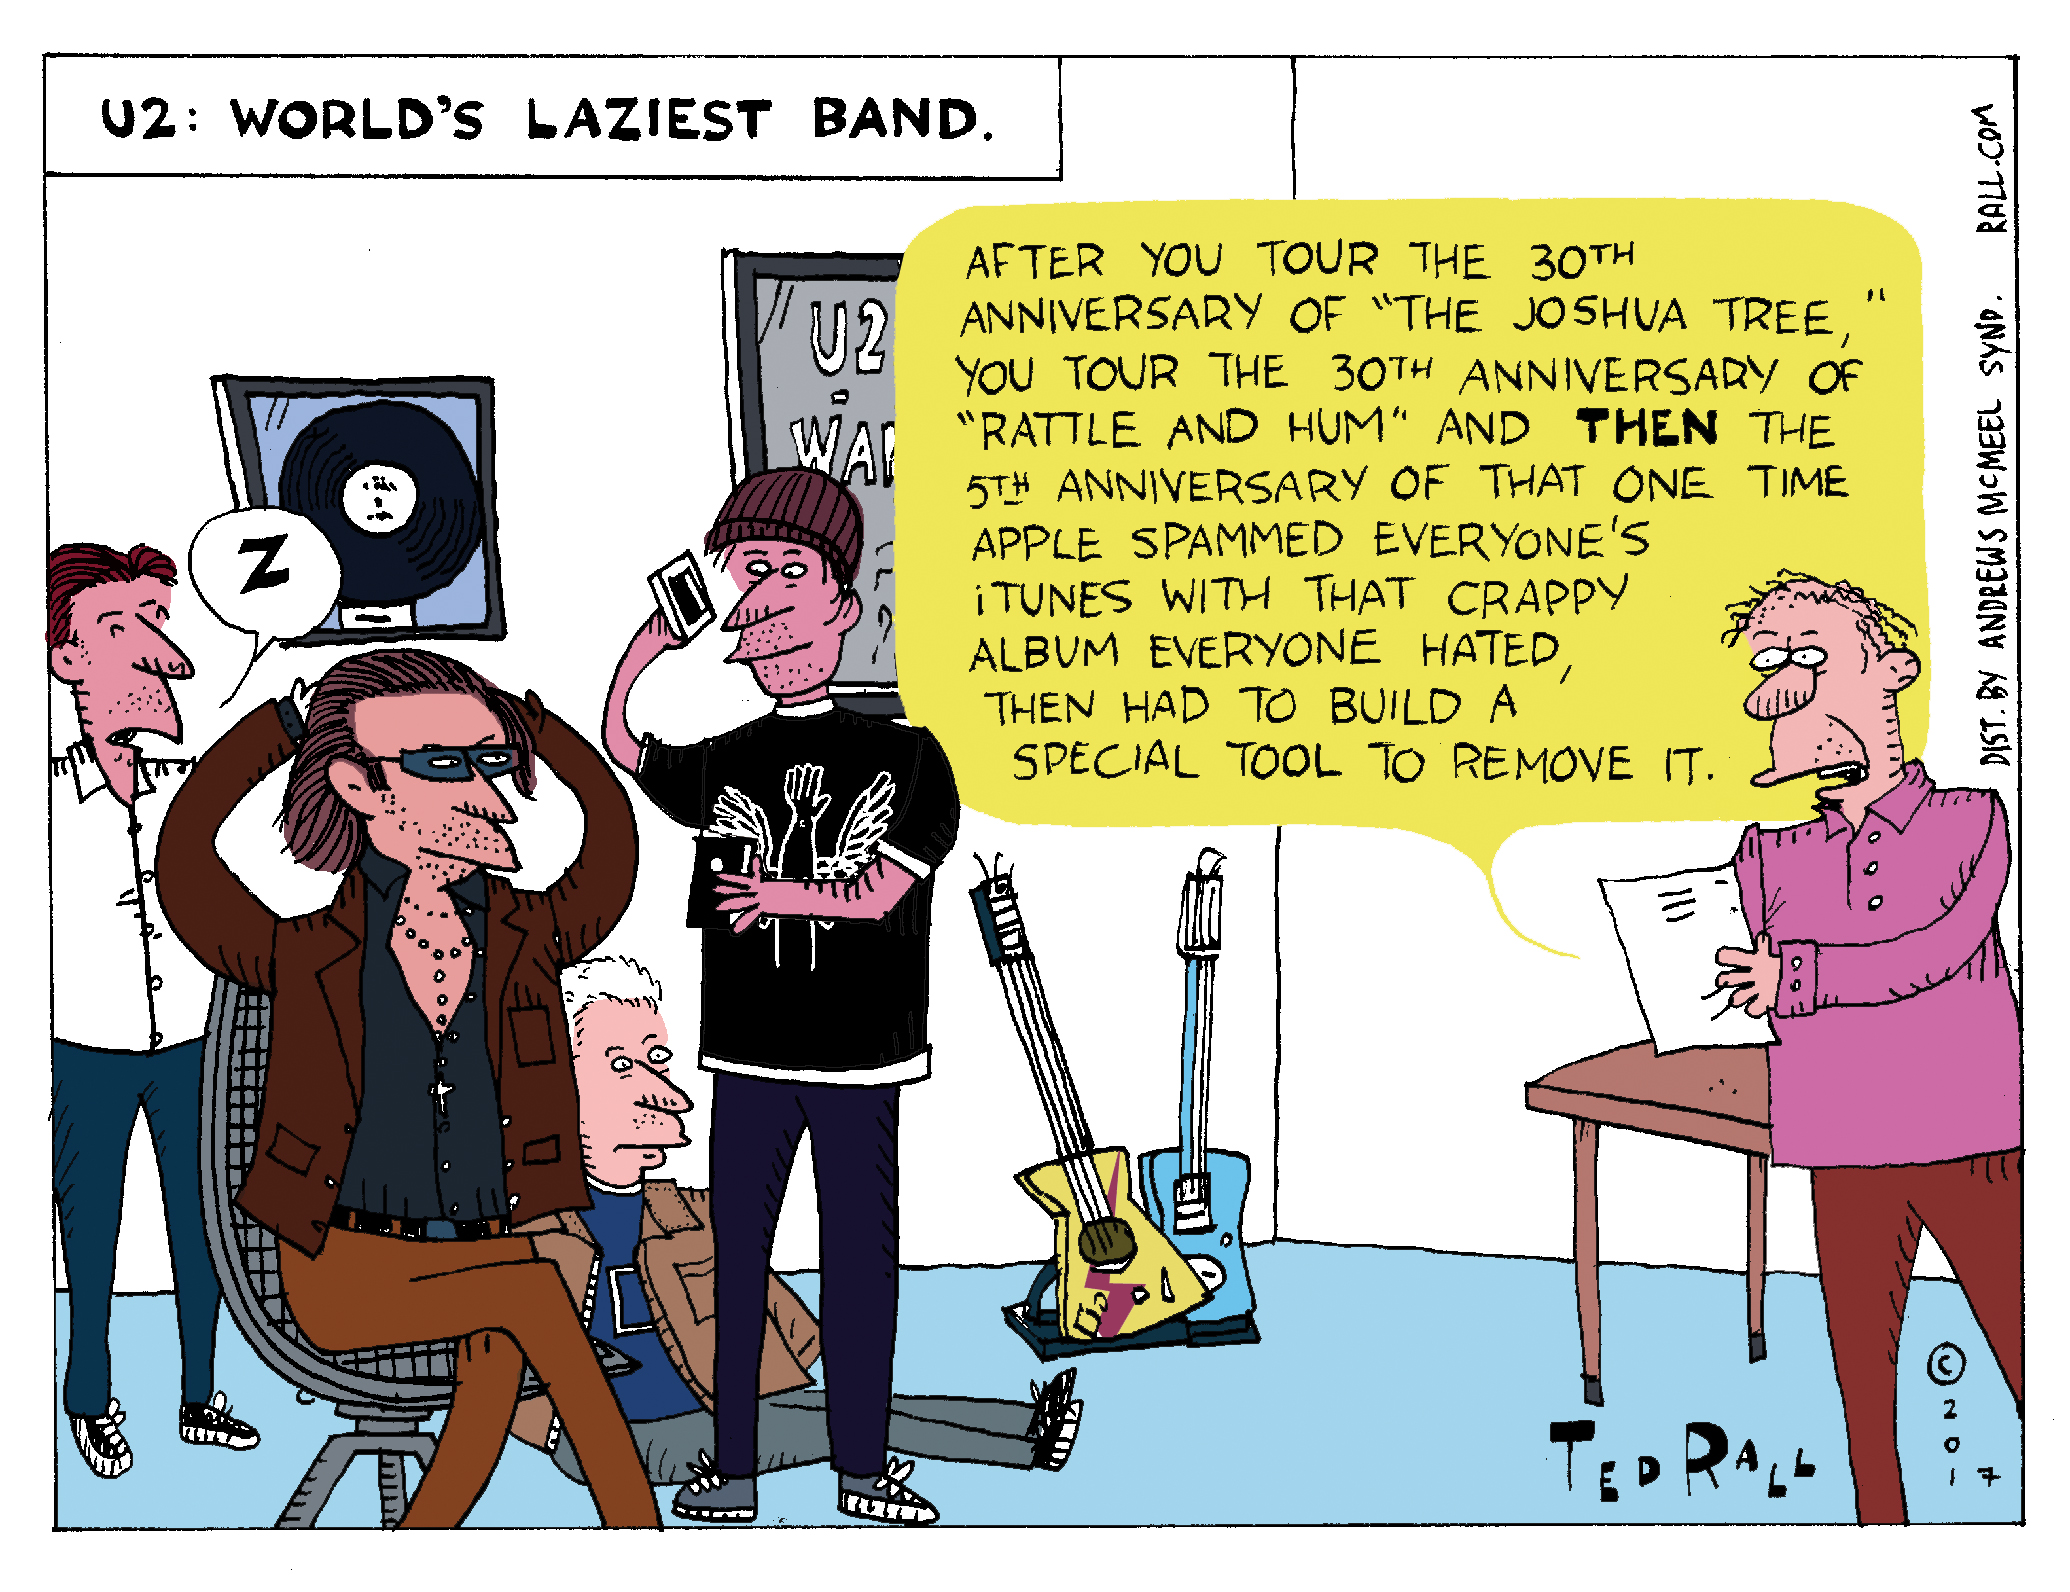 Thirty Years Later, This Is U2: The World's Laziest Band [cartoon]